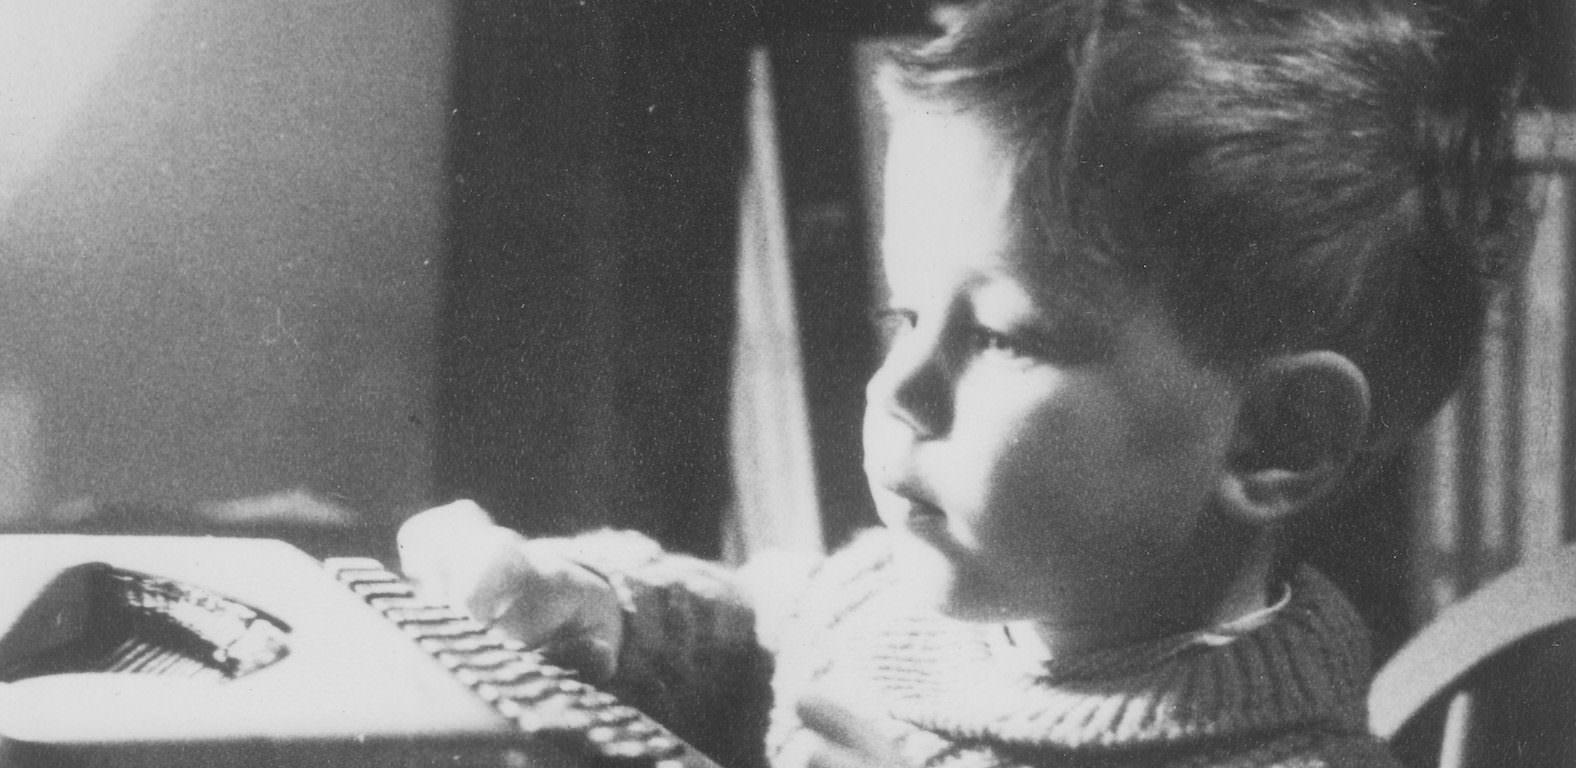 A young boy typing on an old typewriter